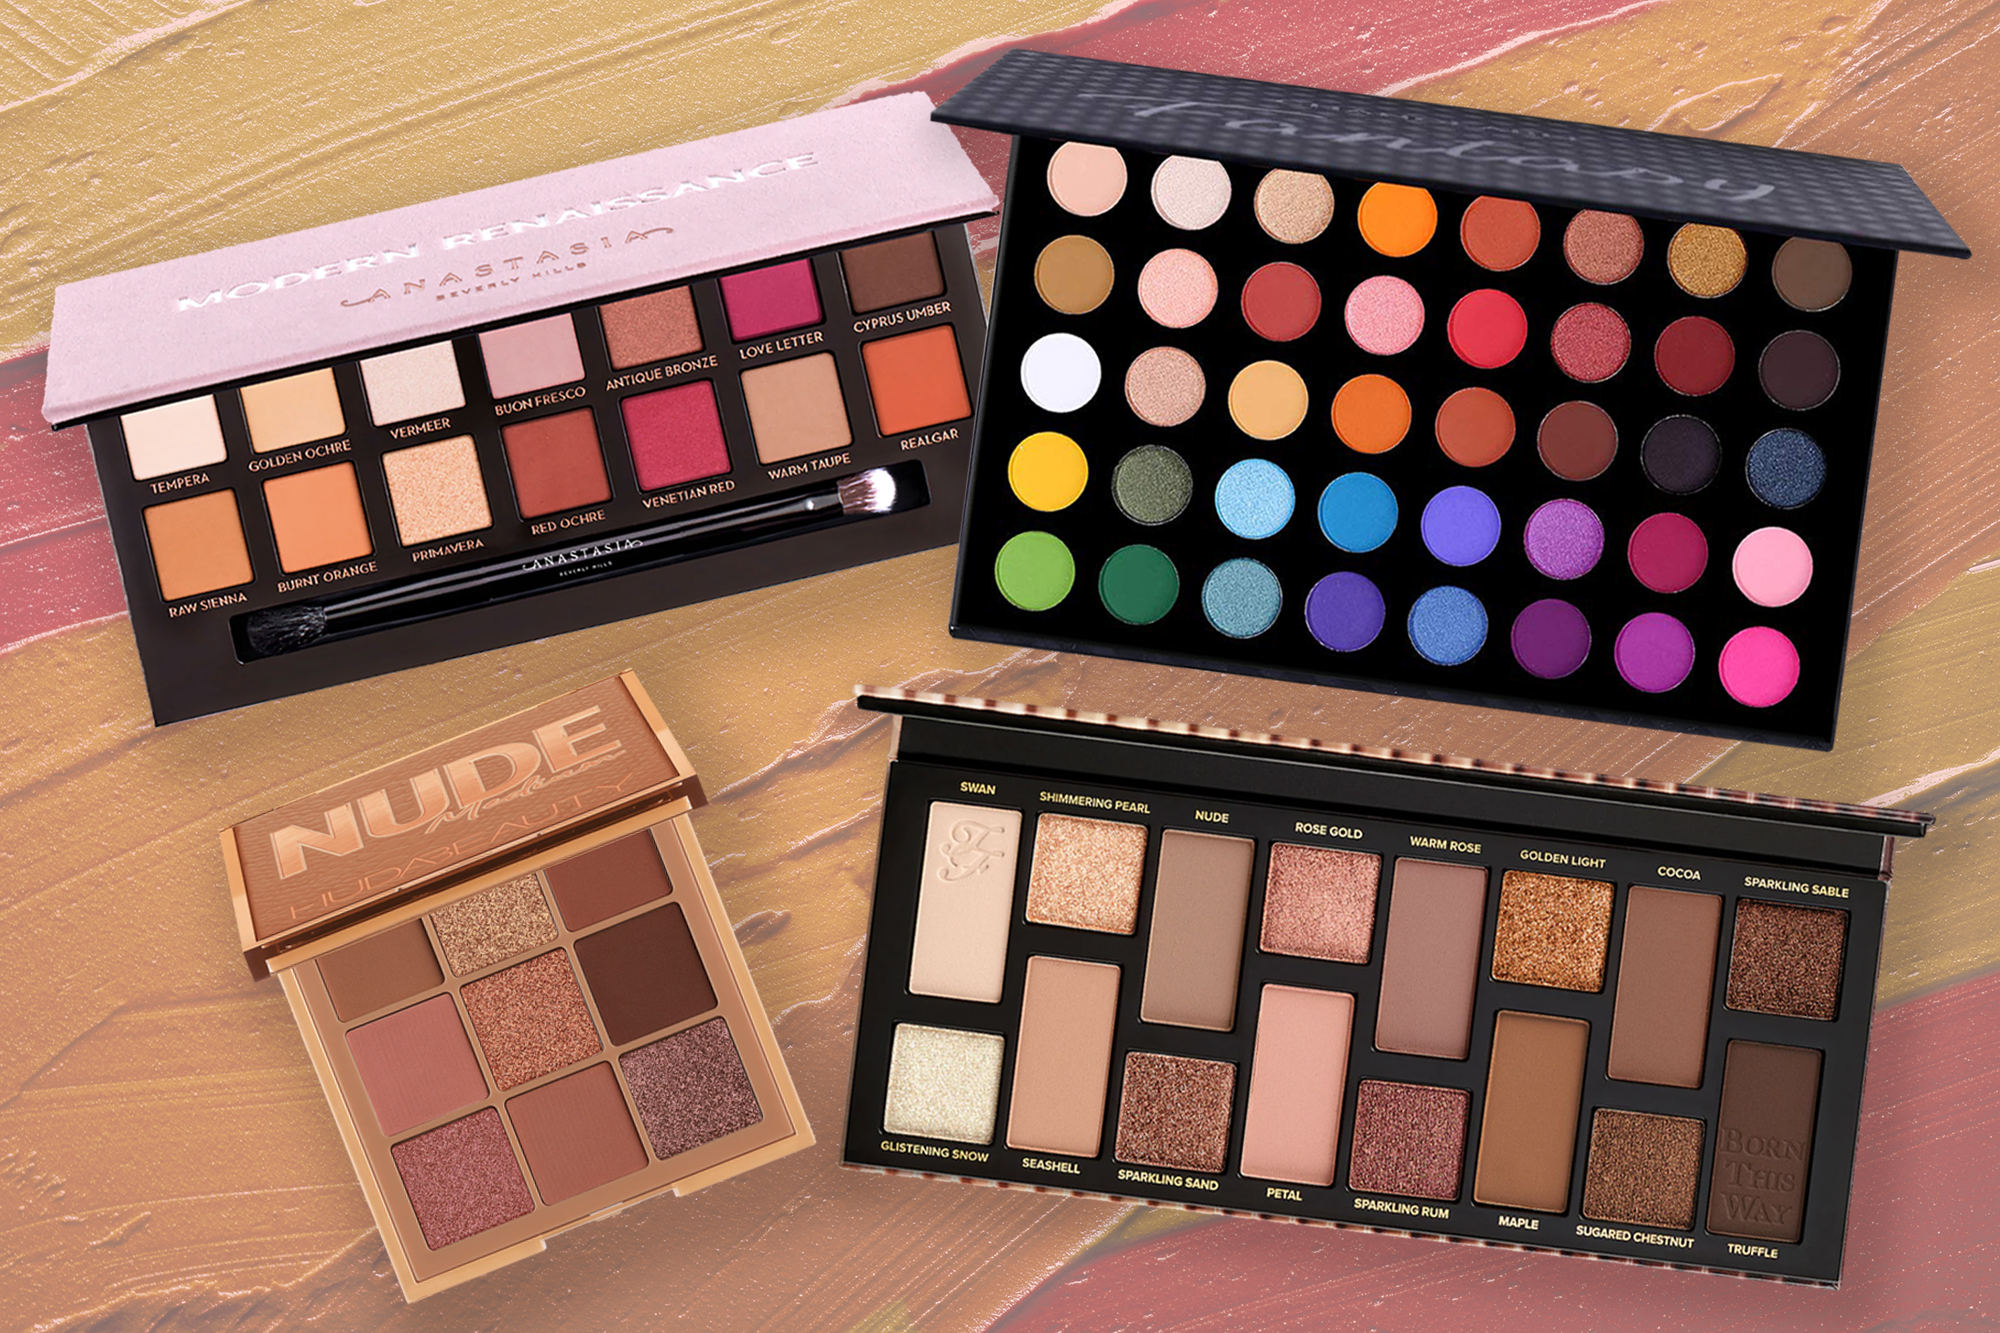 The 30 best eyeshadow palettes we tested to brighten up 2021